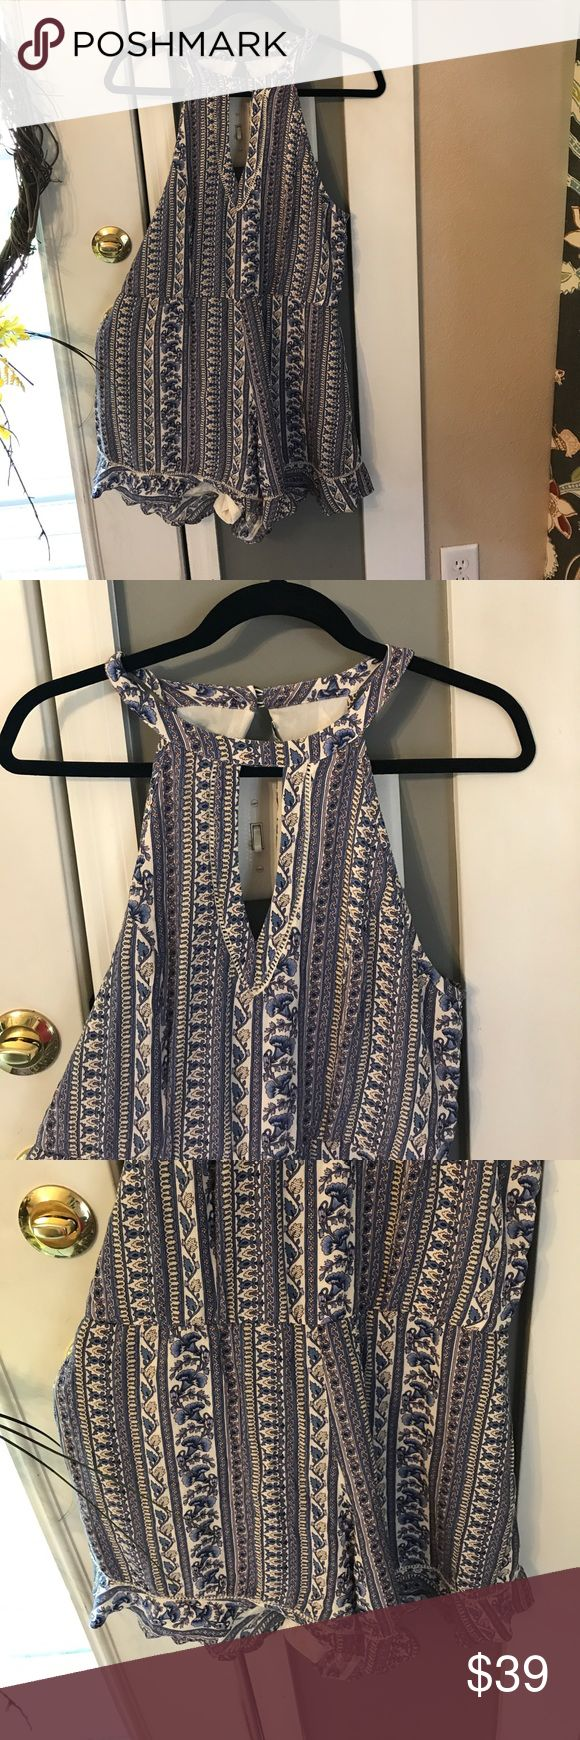 American Eagle Romper, blue floral print Excellent like new condition, wore a few hours only. Pic of materials in photos. Romper , from neck to bottom measures approximately 29 inches give or take. Color blue and white, very cute. Women's romper, key hole on front neckline and two button closure on back neck line.  Price firm American Eagle Outfitters Shorts